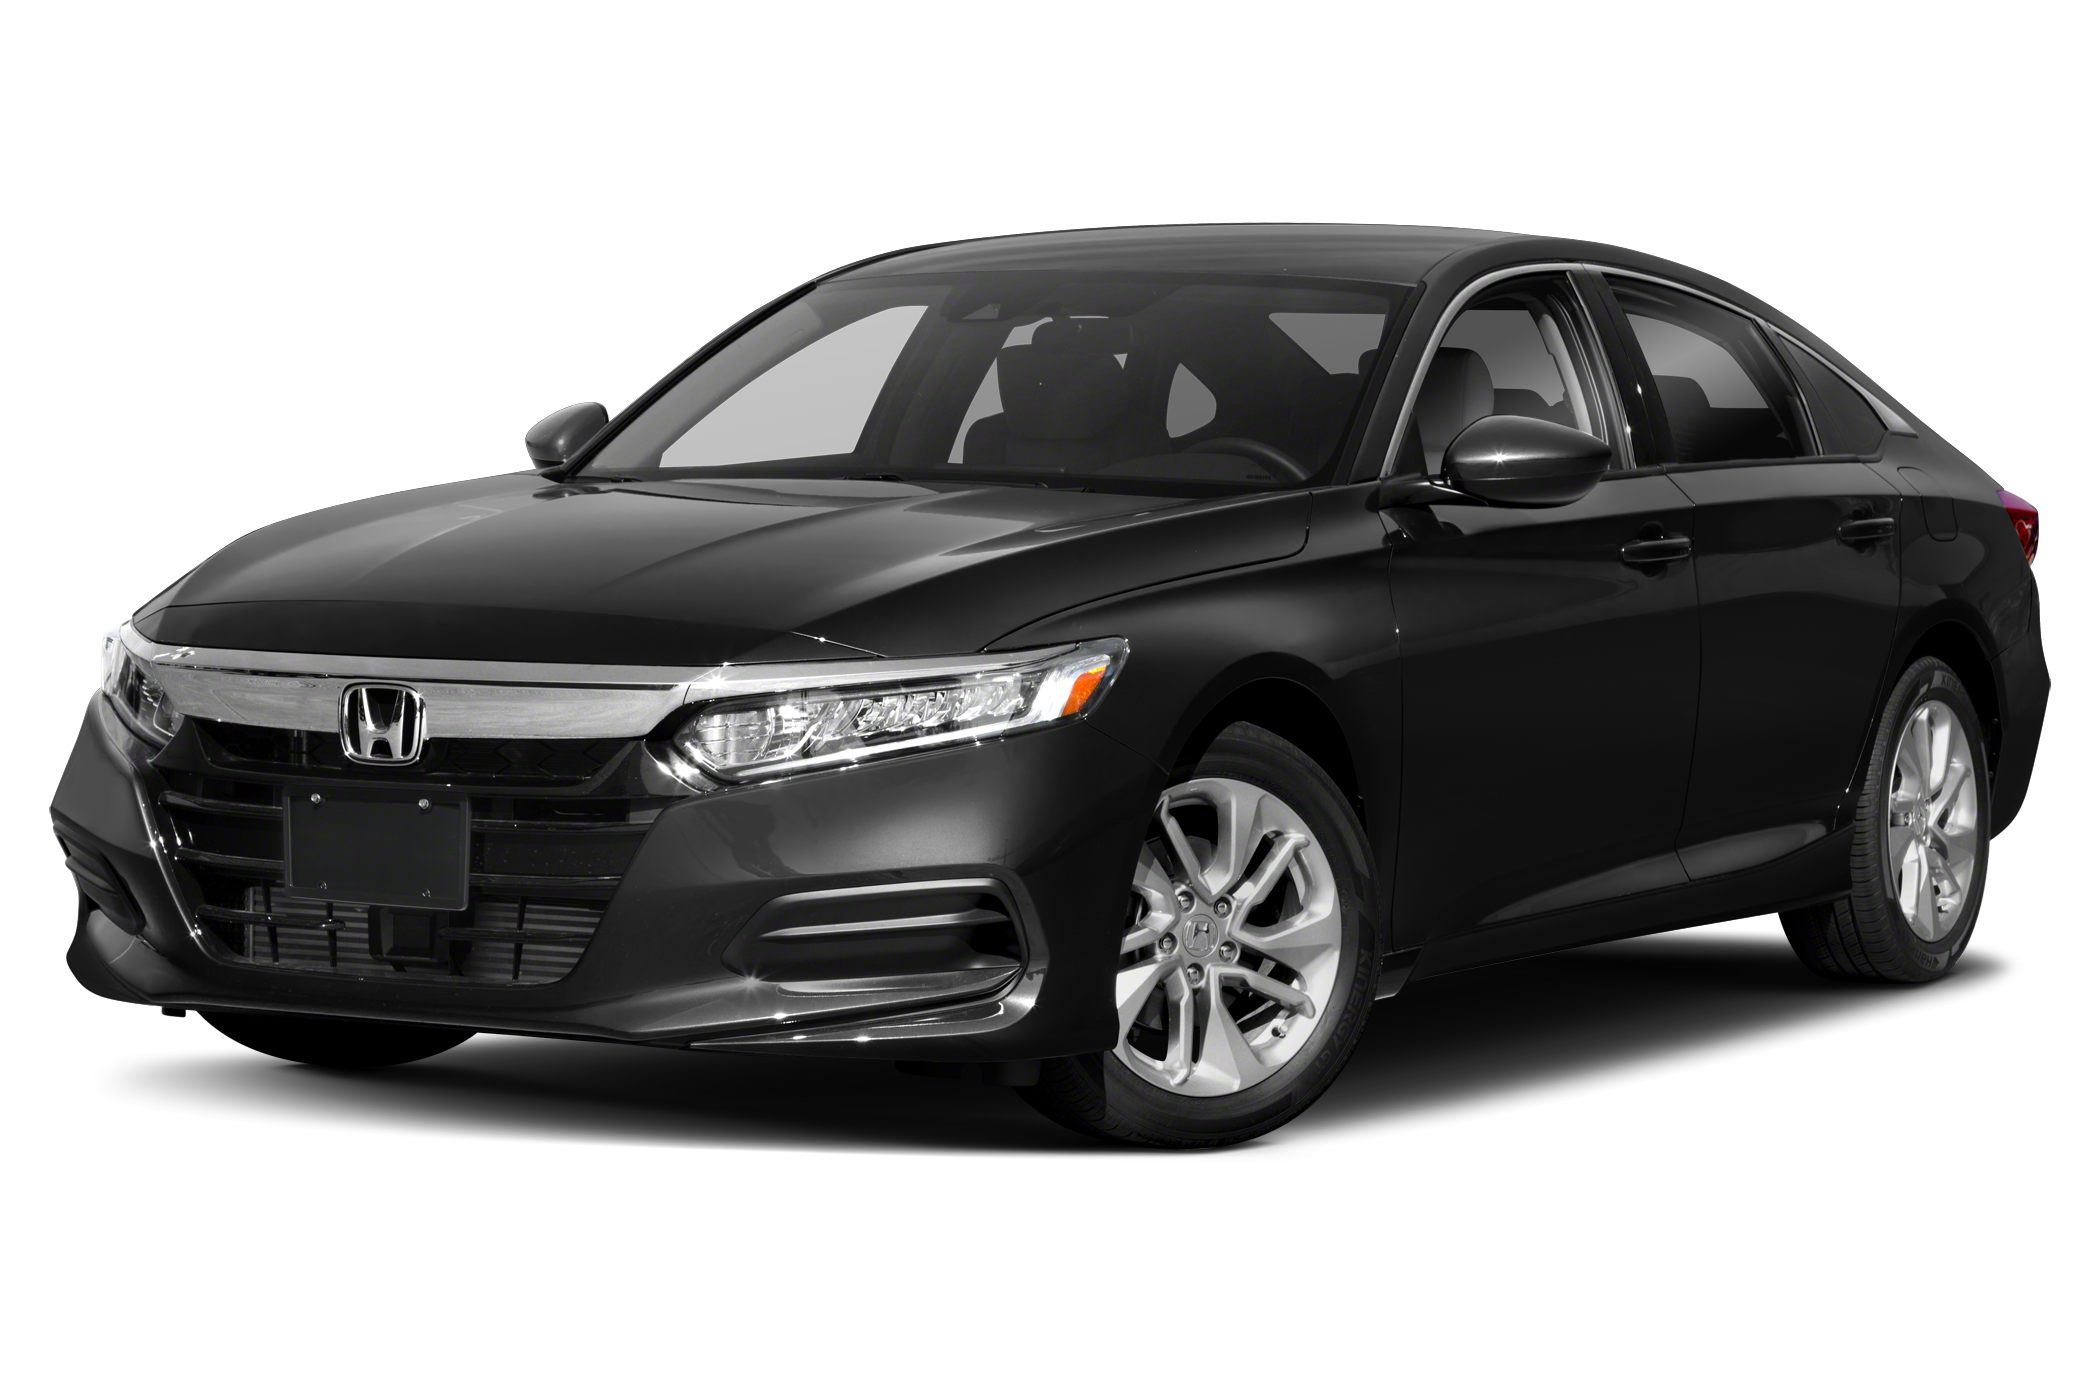 2018 honda accord lx for sale vin 1hgcv1f14ja